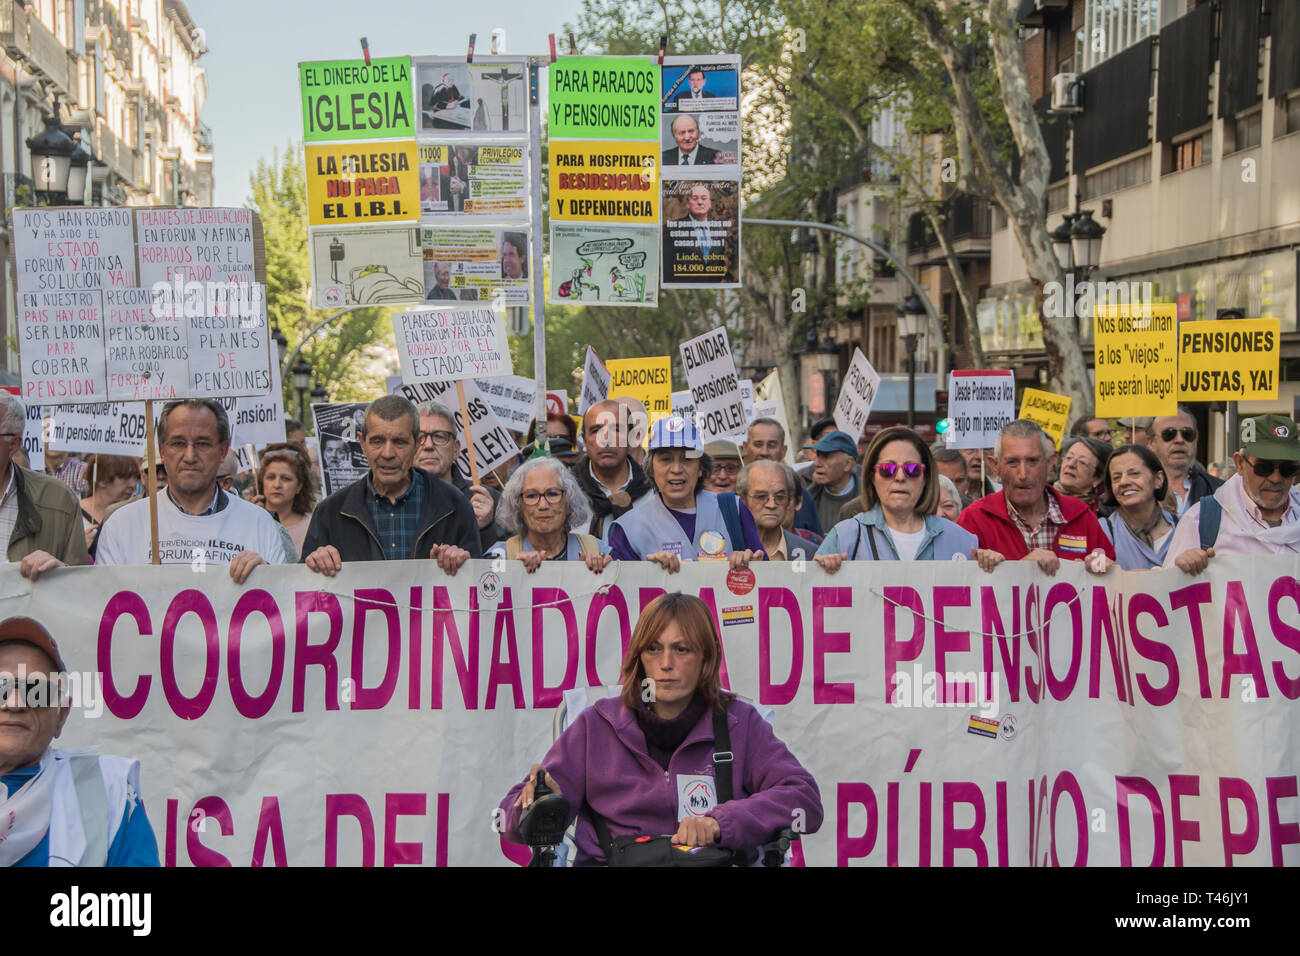 Protesters are seen holding placards and a banner during the demonstration. Demonstration to defend the systemic public pension in Madrid by the CCOO coordination of pensioners that calls on the Government to ensure the presentation in this term of an initiative to repeal the pension reform of 2013, which must be legally validated in the face of elections this month of April 2019, within the framework of broad agreements in the political and social sphere. This initiative is a prior agreement of the social partners (trade unions and employers), culminating the process of consultation with the  Stock Photo